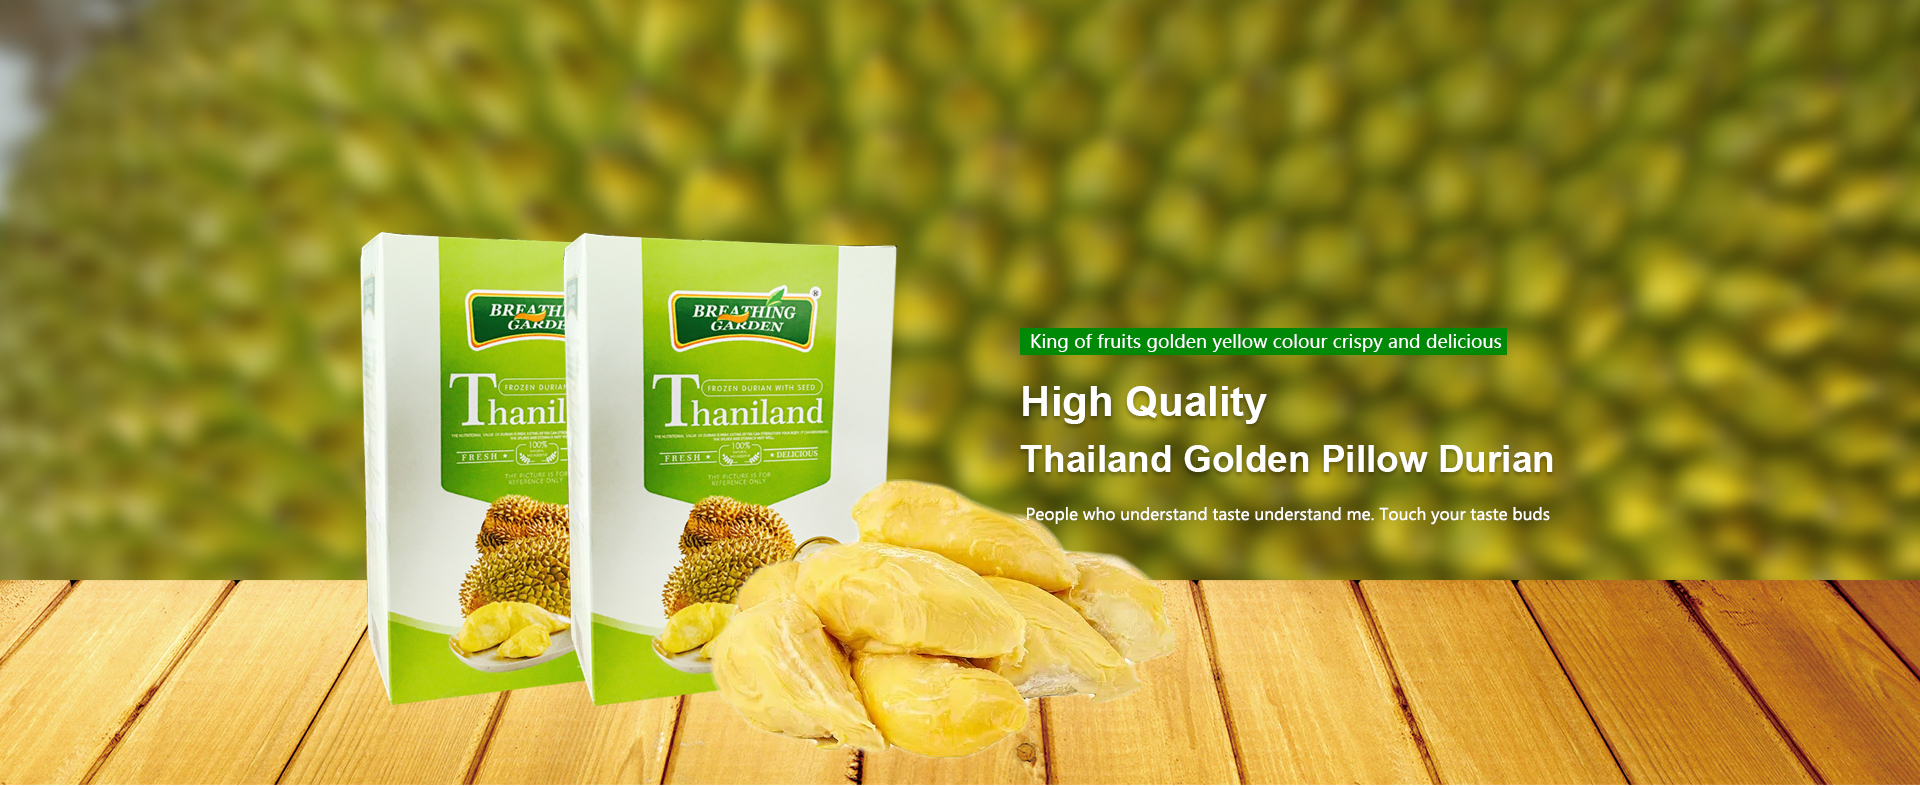 Thailand durian joined